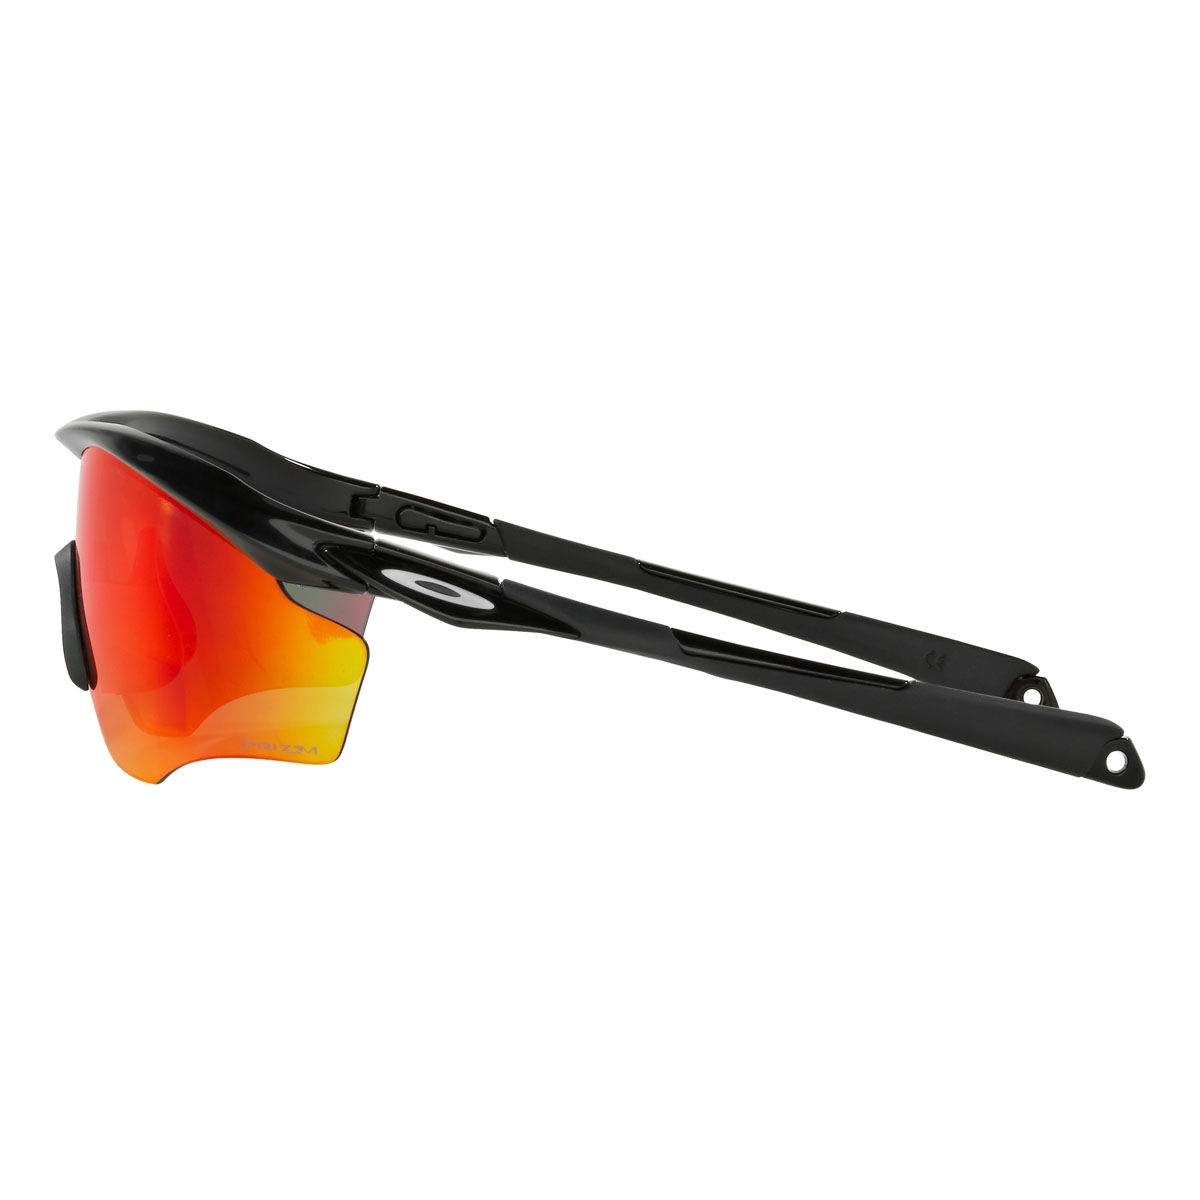 7678276ed60 ... Image of Oakley M2 Frame XL Prizm Cricket Sunglasses - Polished Black  Frame Prizm Cricket ...